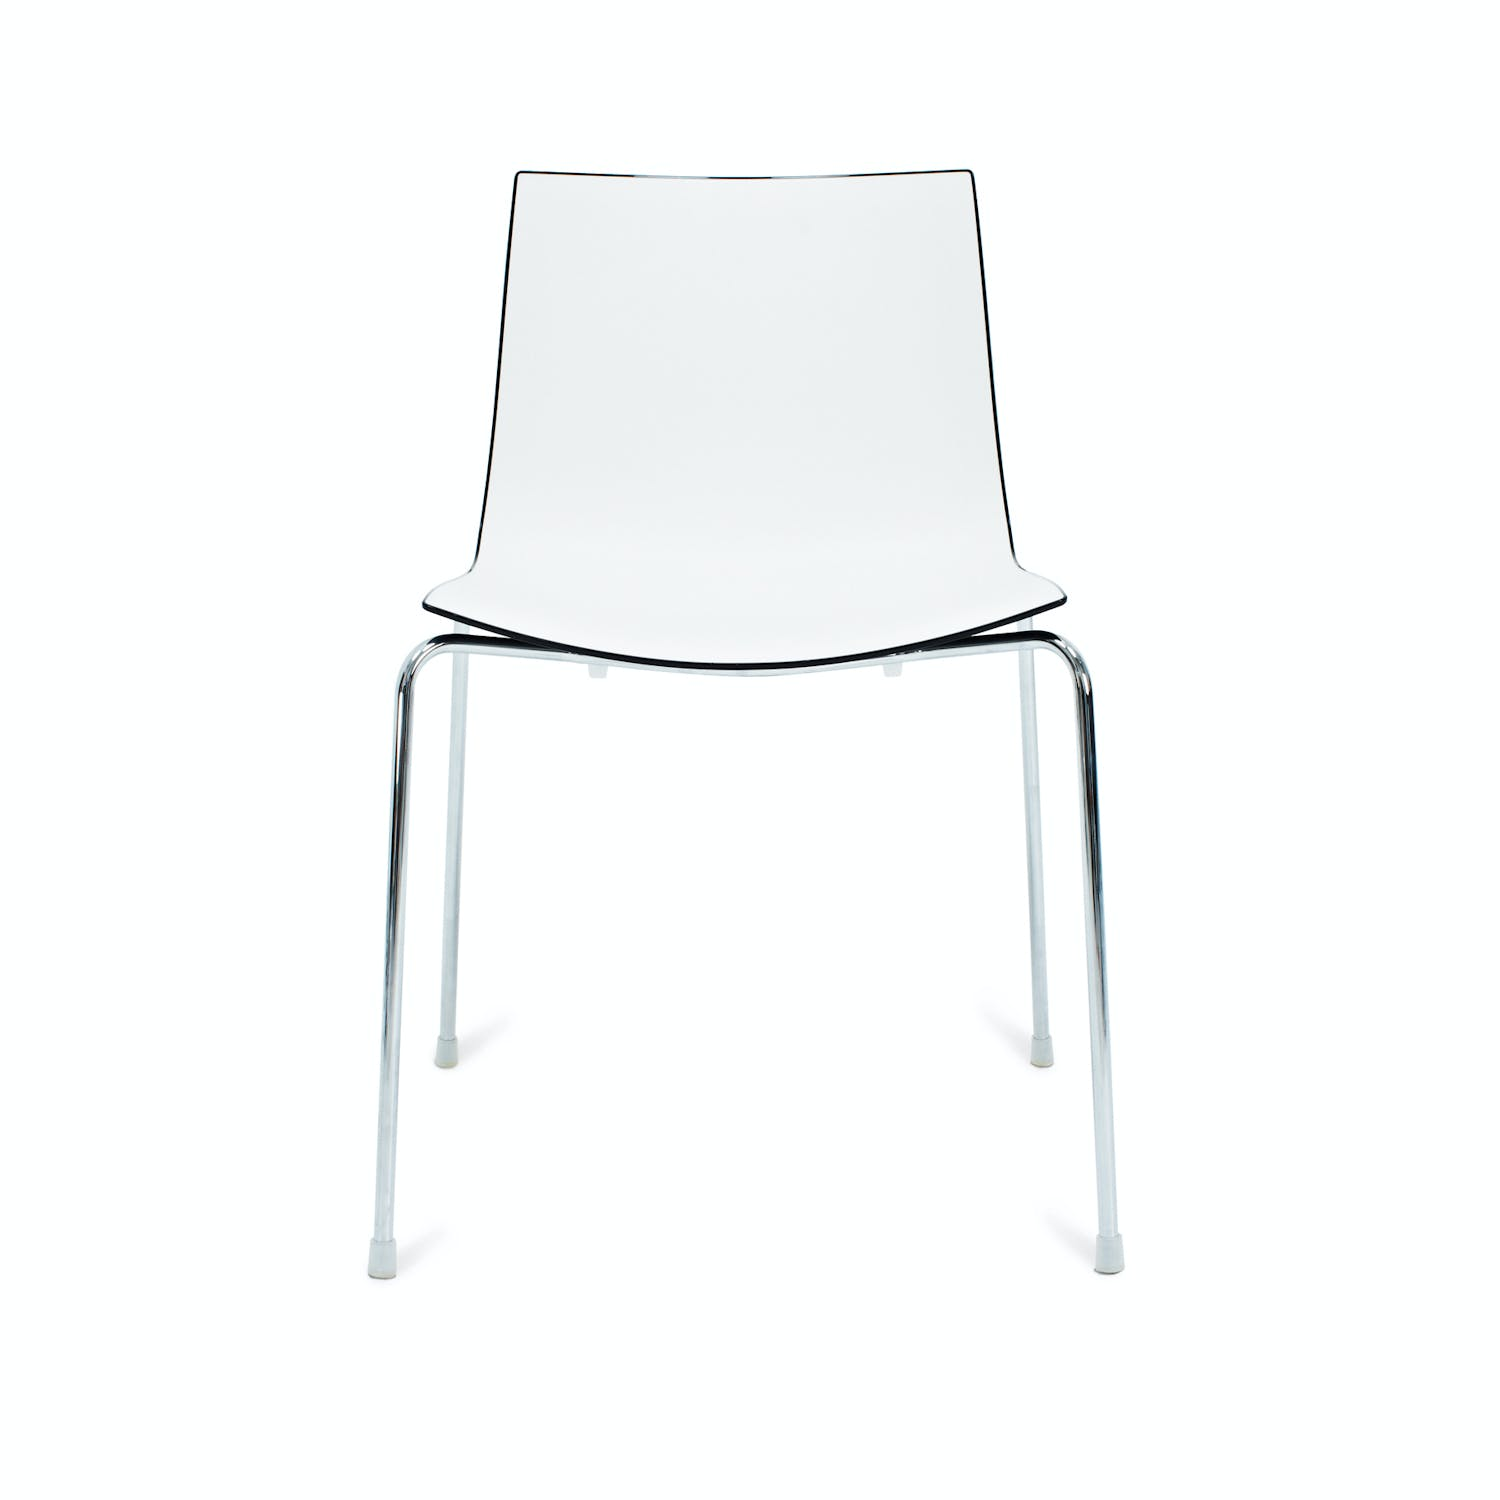 Product Image - Two-Tone Catifa 46 Chair